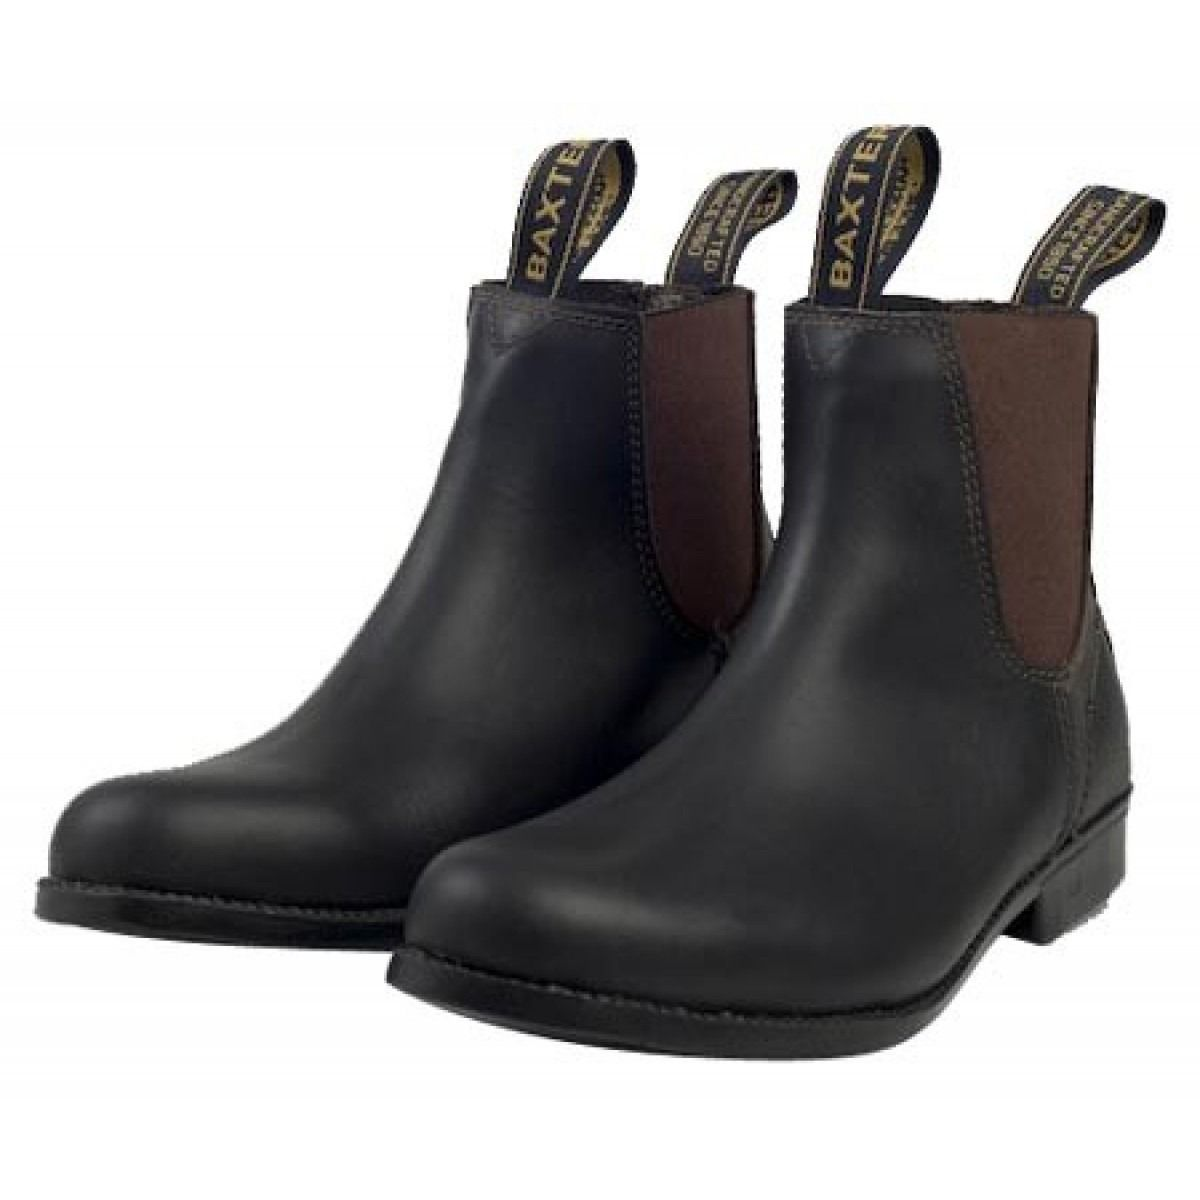 Boots, Horse riding boots, Blundstone boots